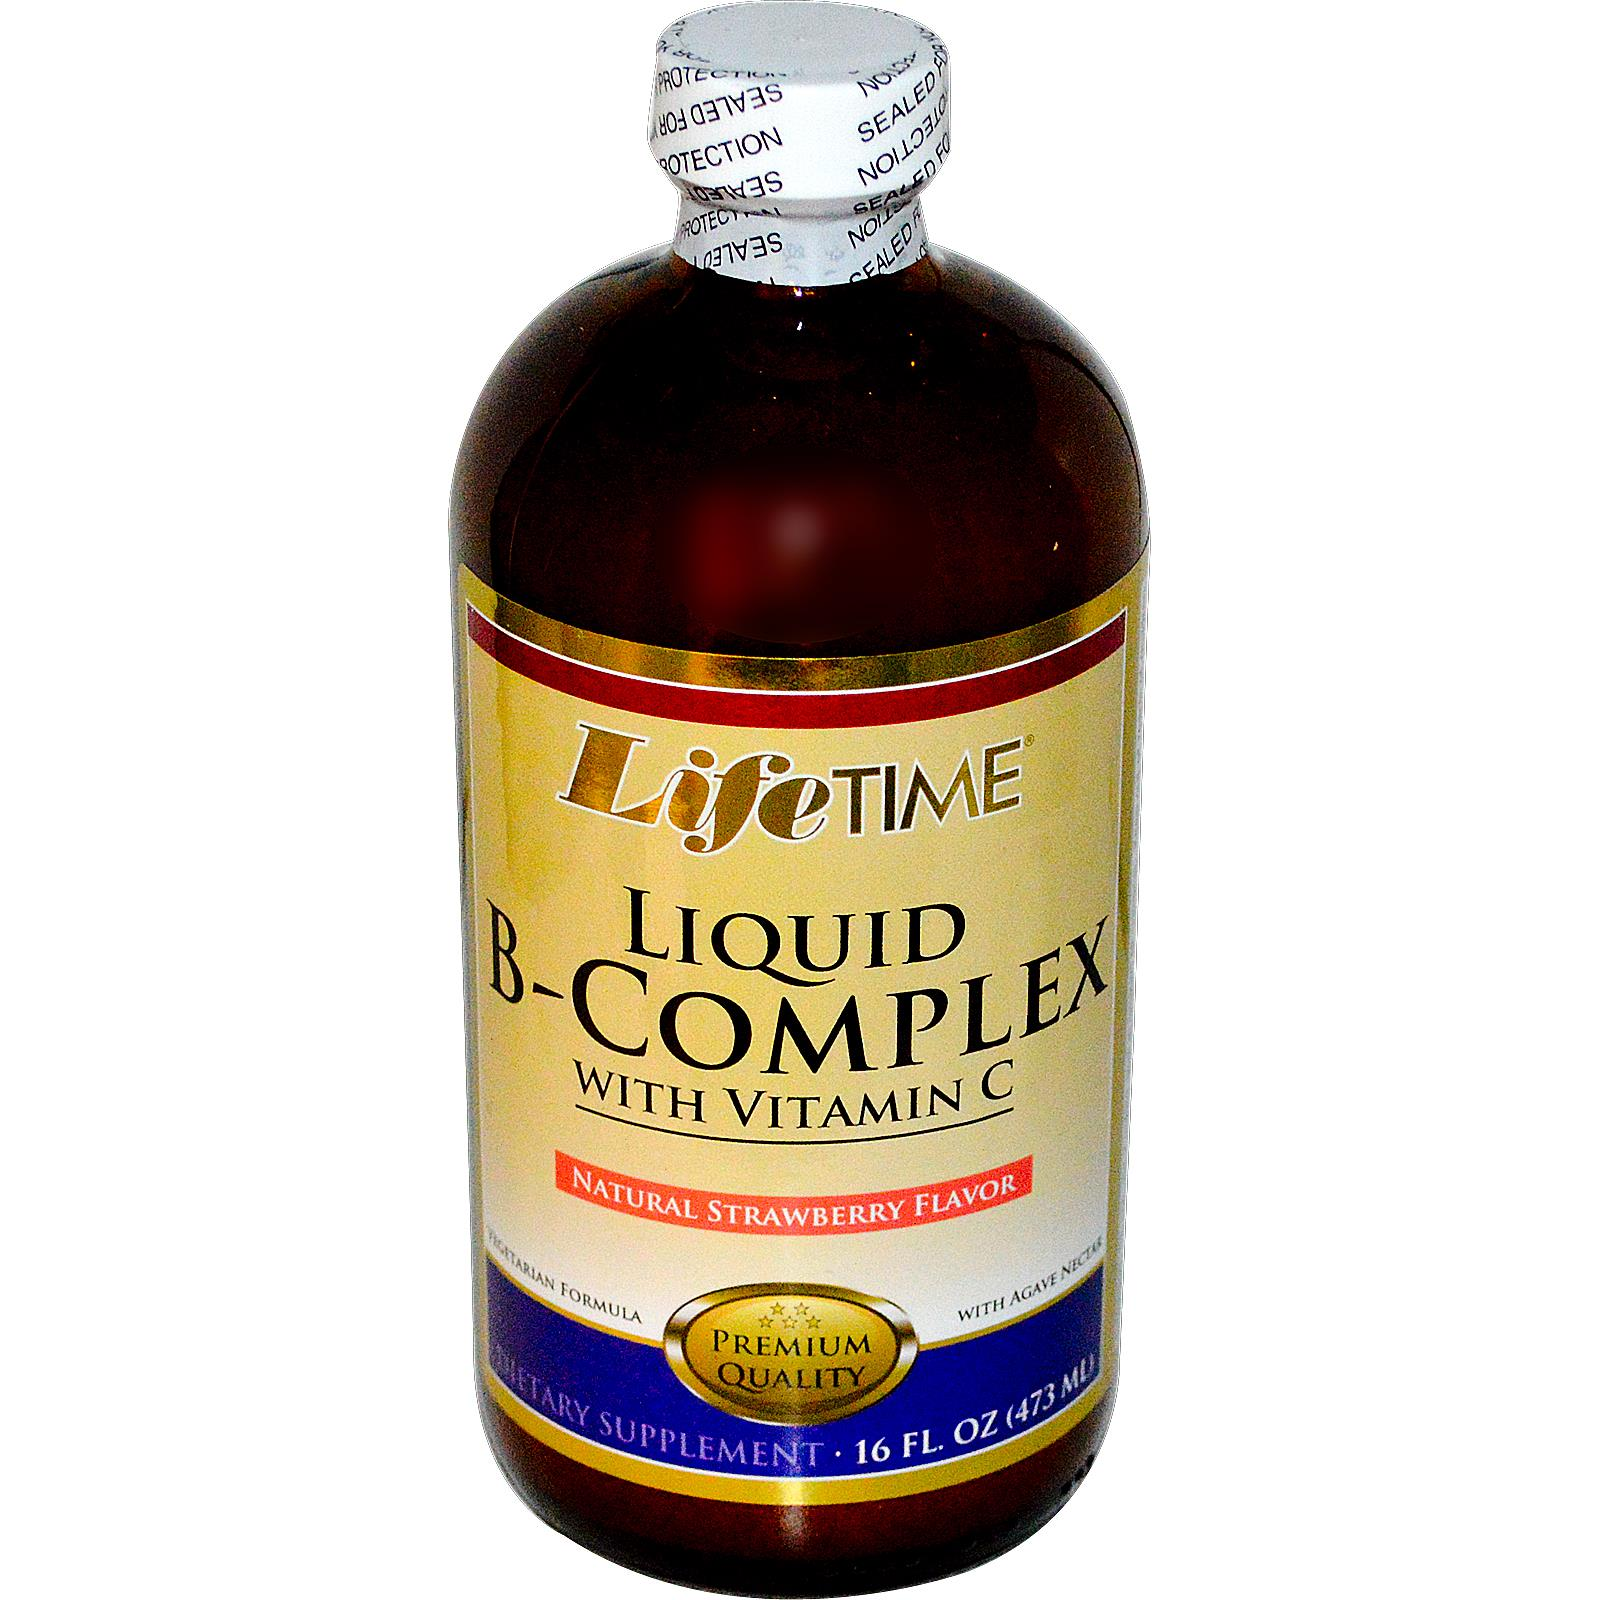 CALIFORNIA NATURAL VITAMINS: B Complex Liquid 1 oz